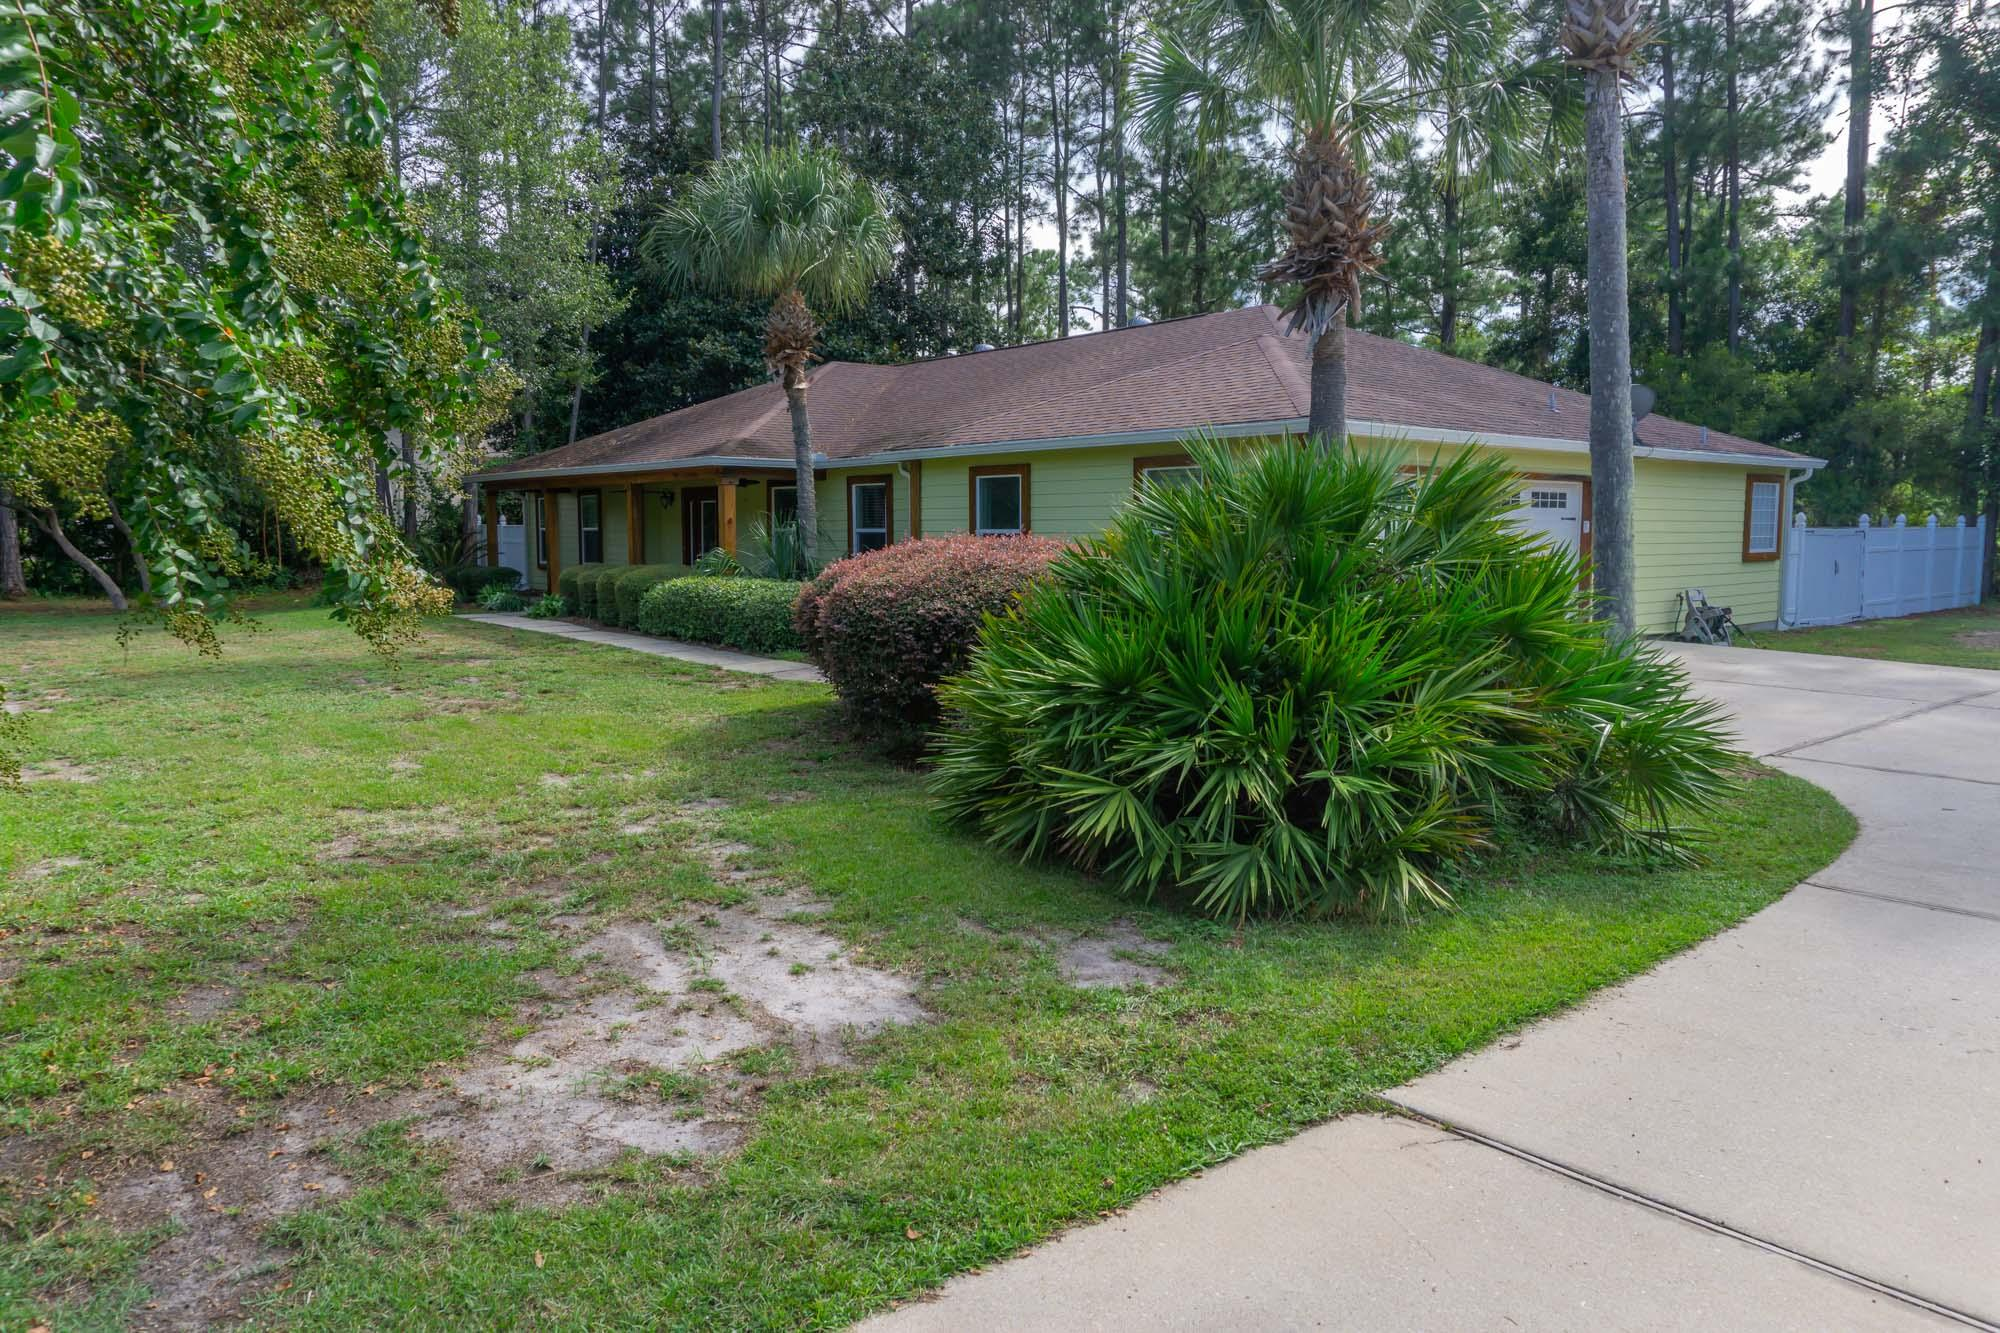 Photo of home for sale at 209 Santa Barbara, Santa Rosa Beach FL